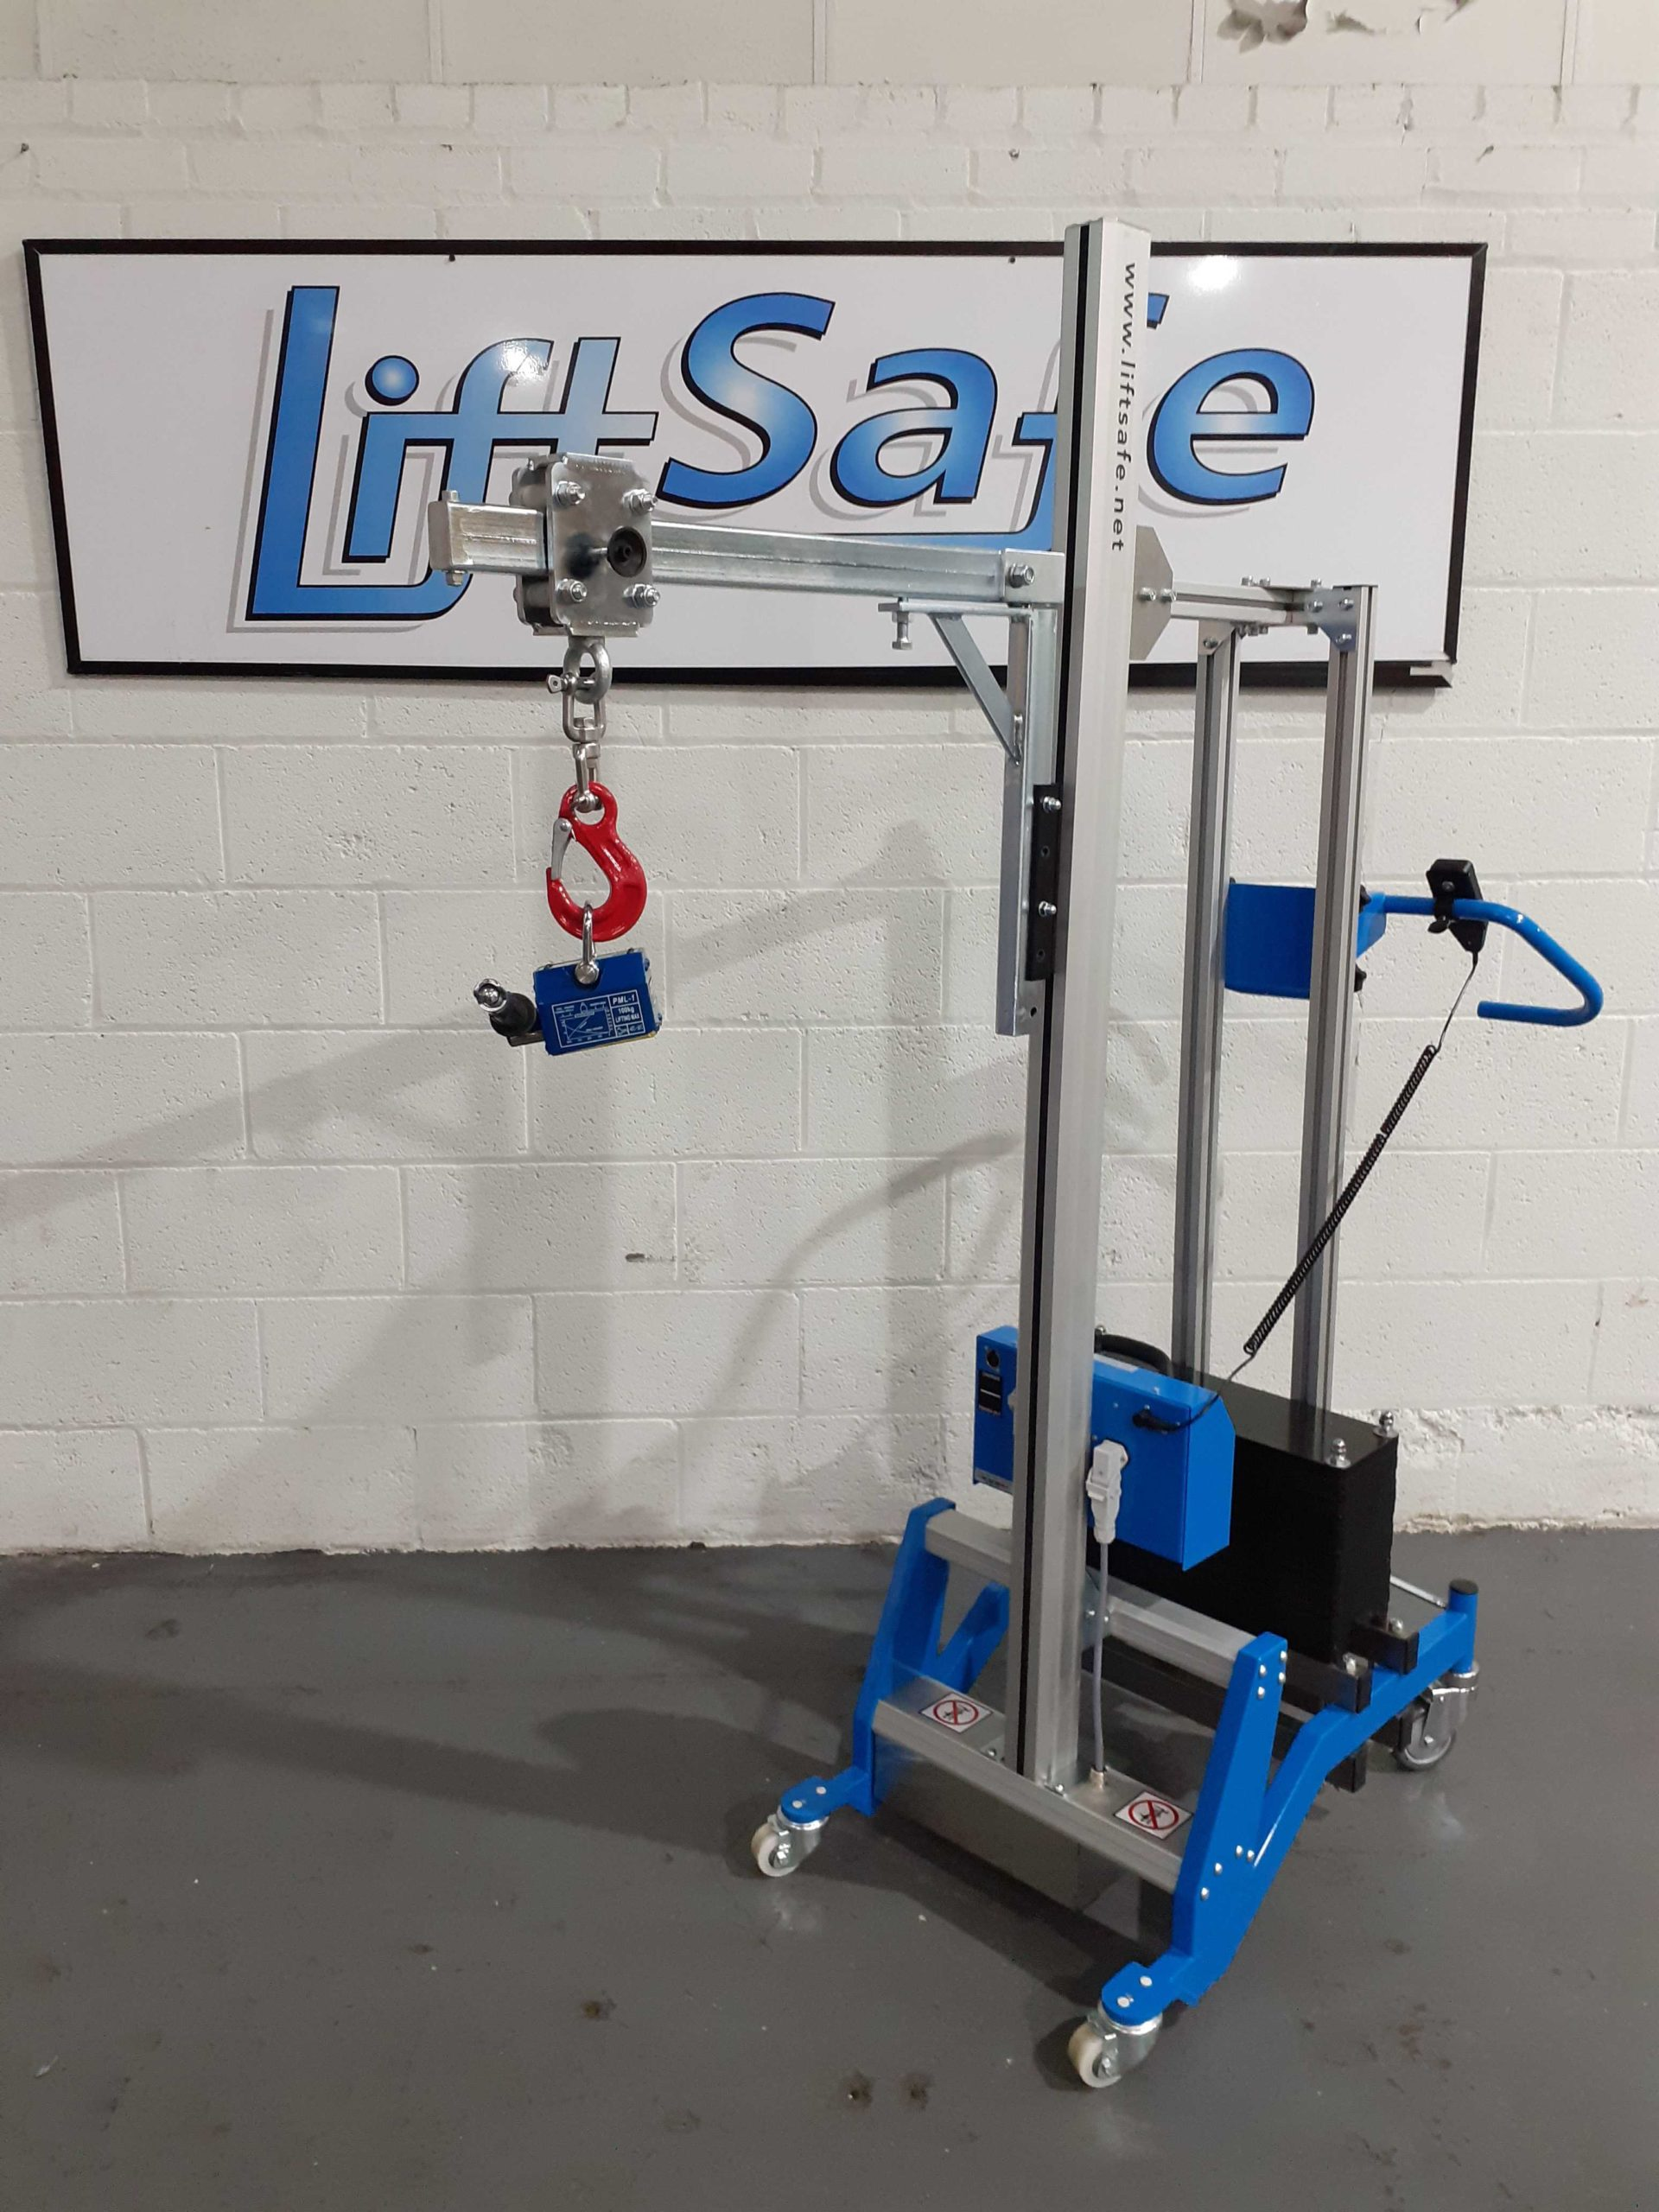 LSM 130 Counterbalance Lifter Supplied To Leading Pharmaceutical Company